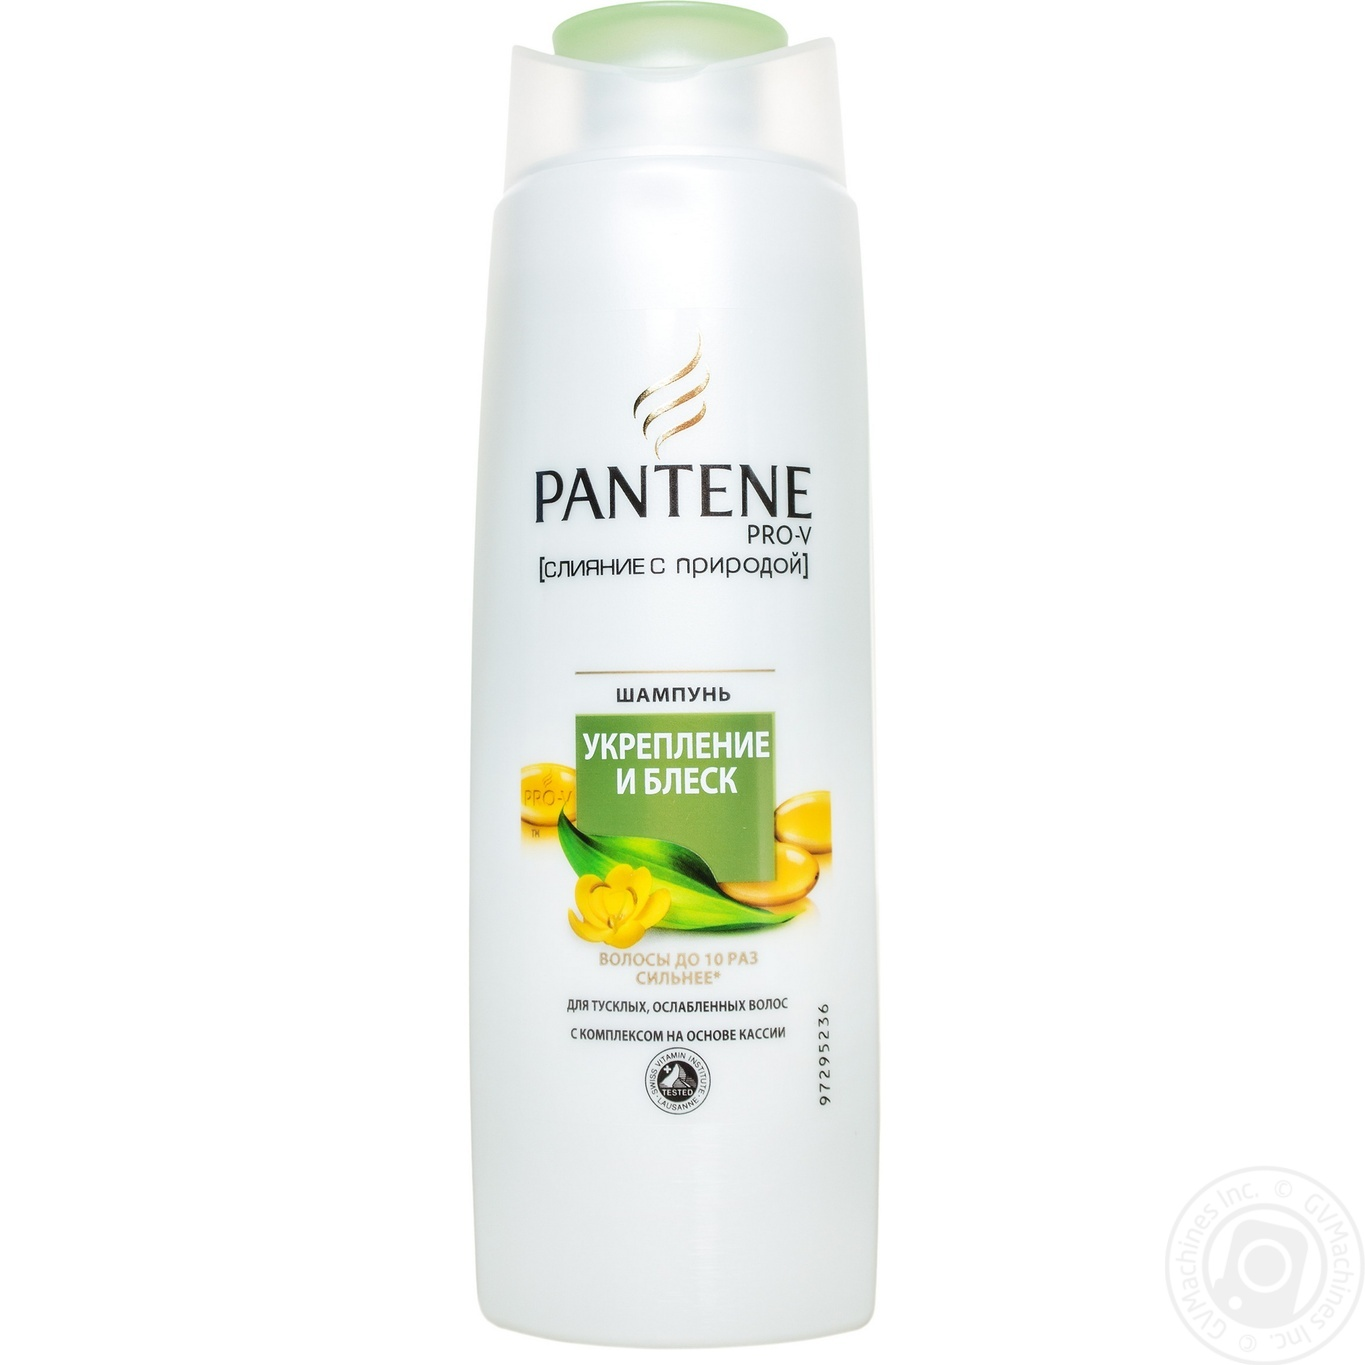 shampoo pantene pro-v for thin hair 250ml → hygiene → hair care